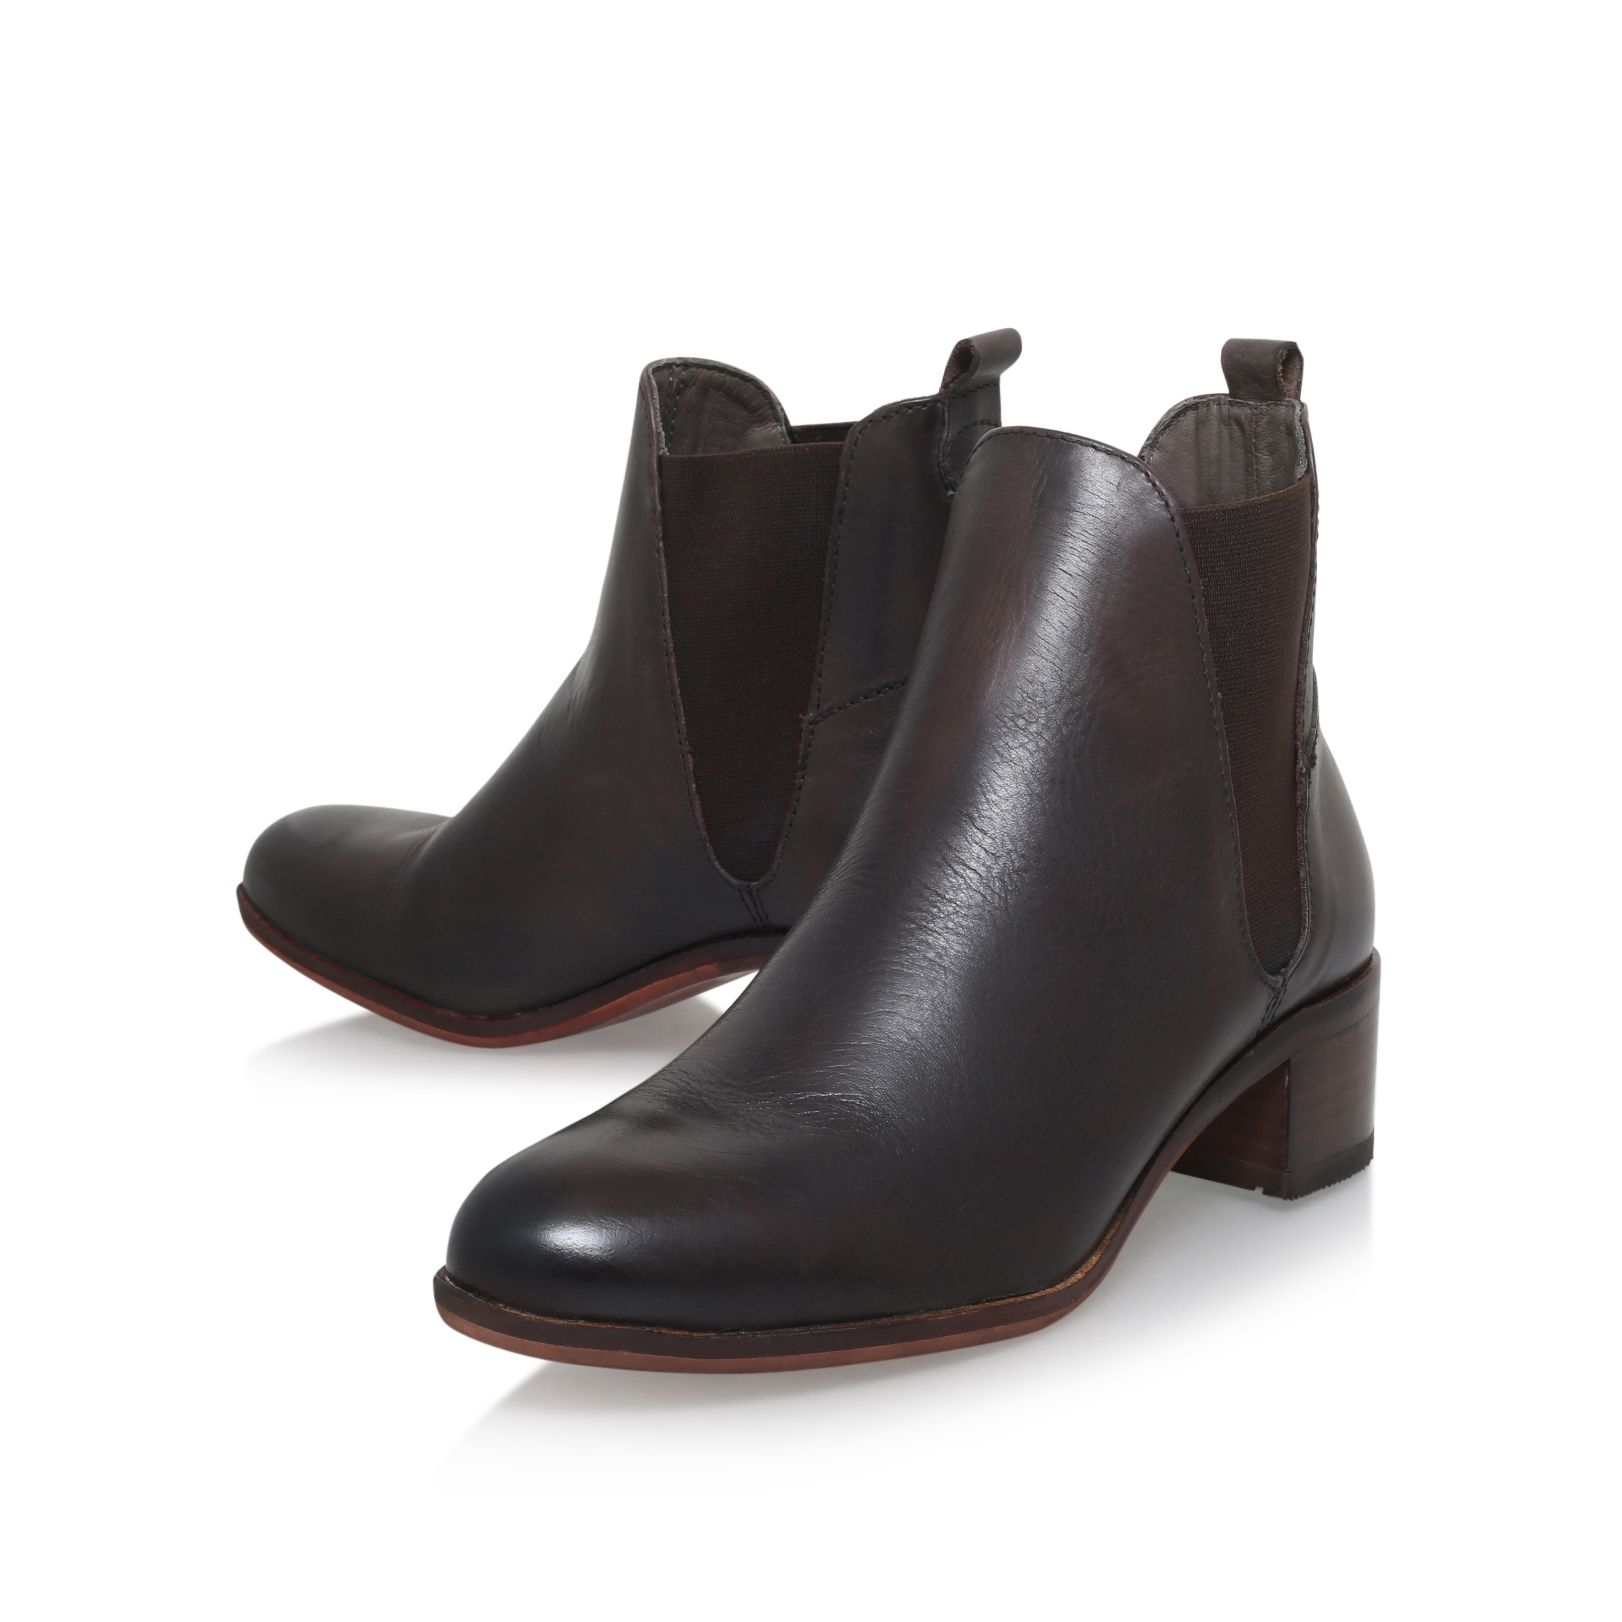 H by Hudson Leather Compound Mid Block Heel Ankle Boots in Brown (Black)